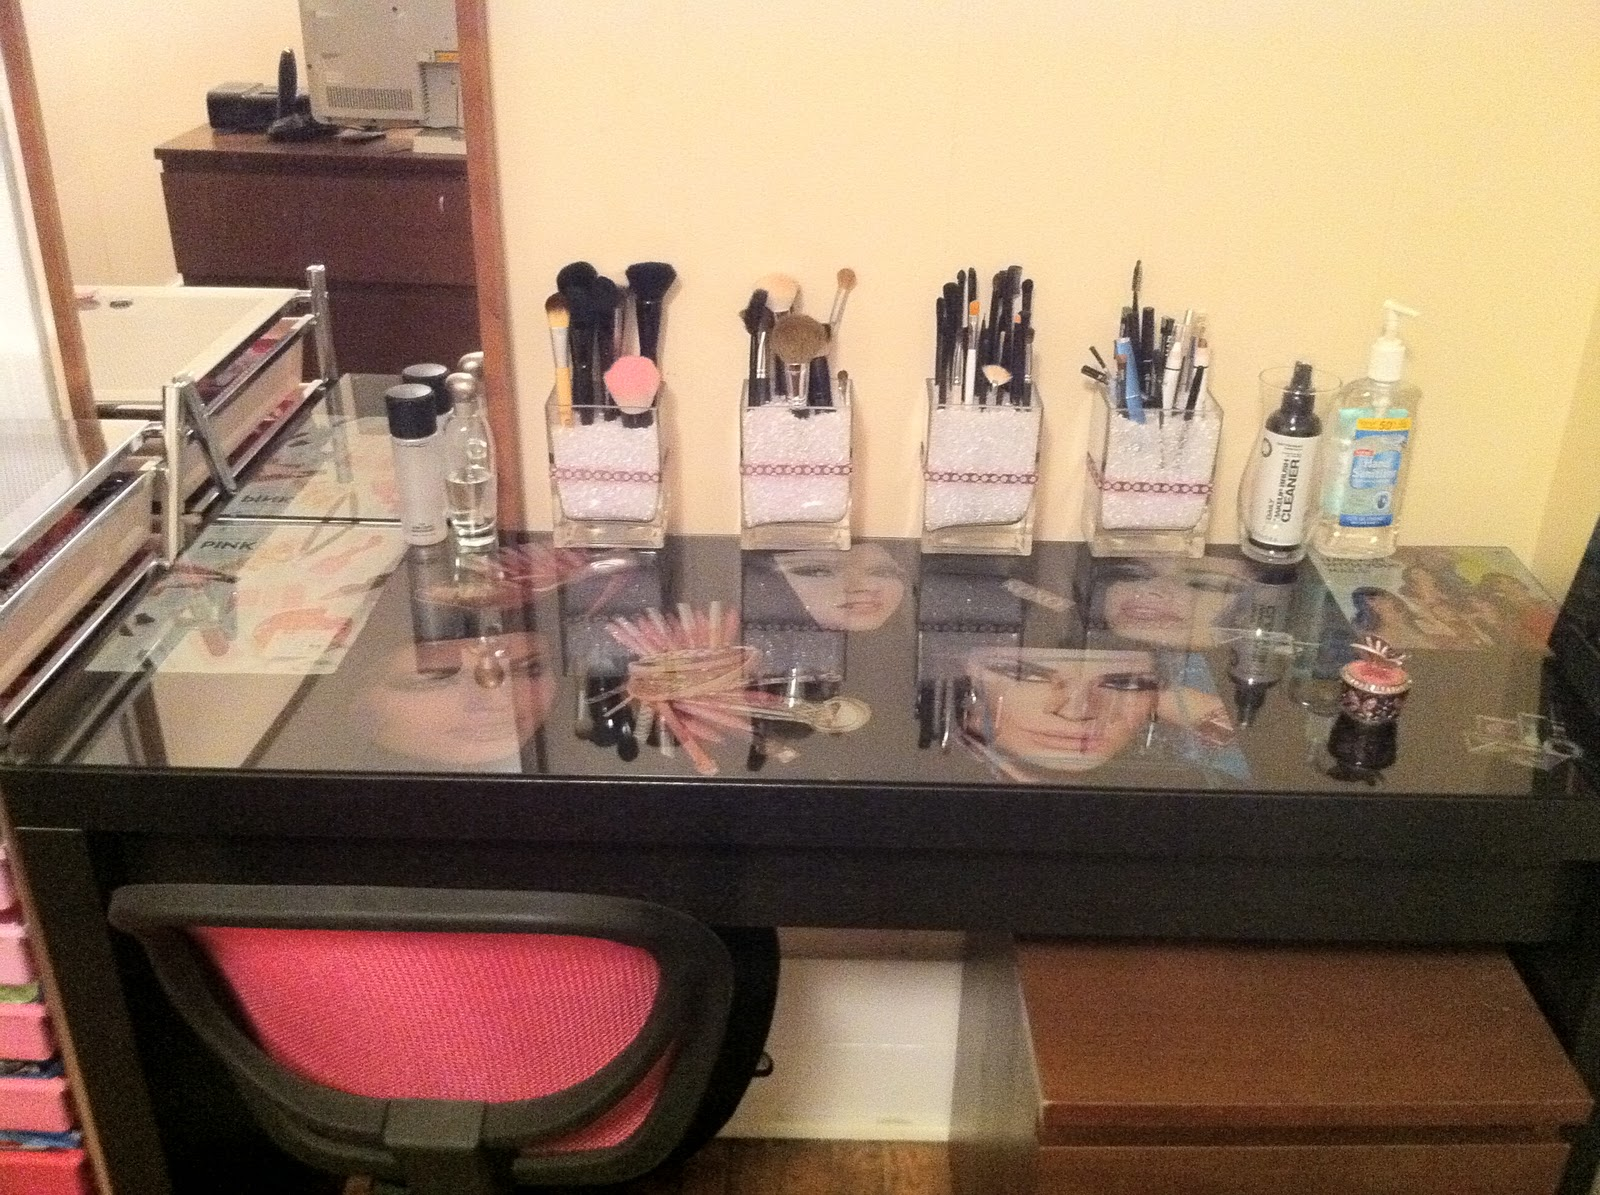 DIY Vanity Tables http://www.mypinktasticlife.com/2010/10/my-makeup-vanity-and-collection-before.html